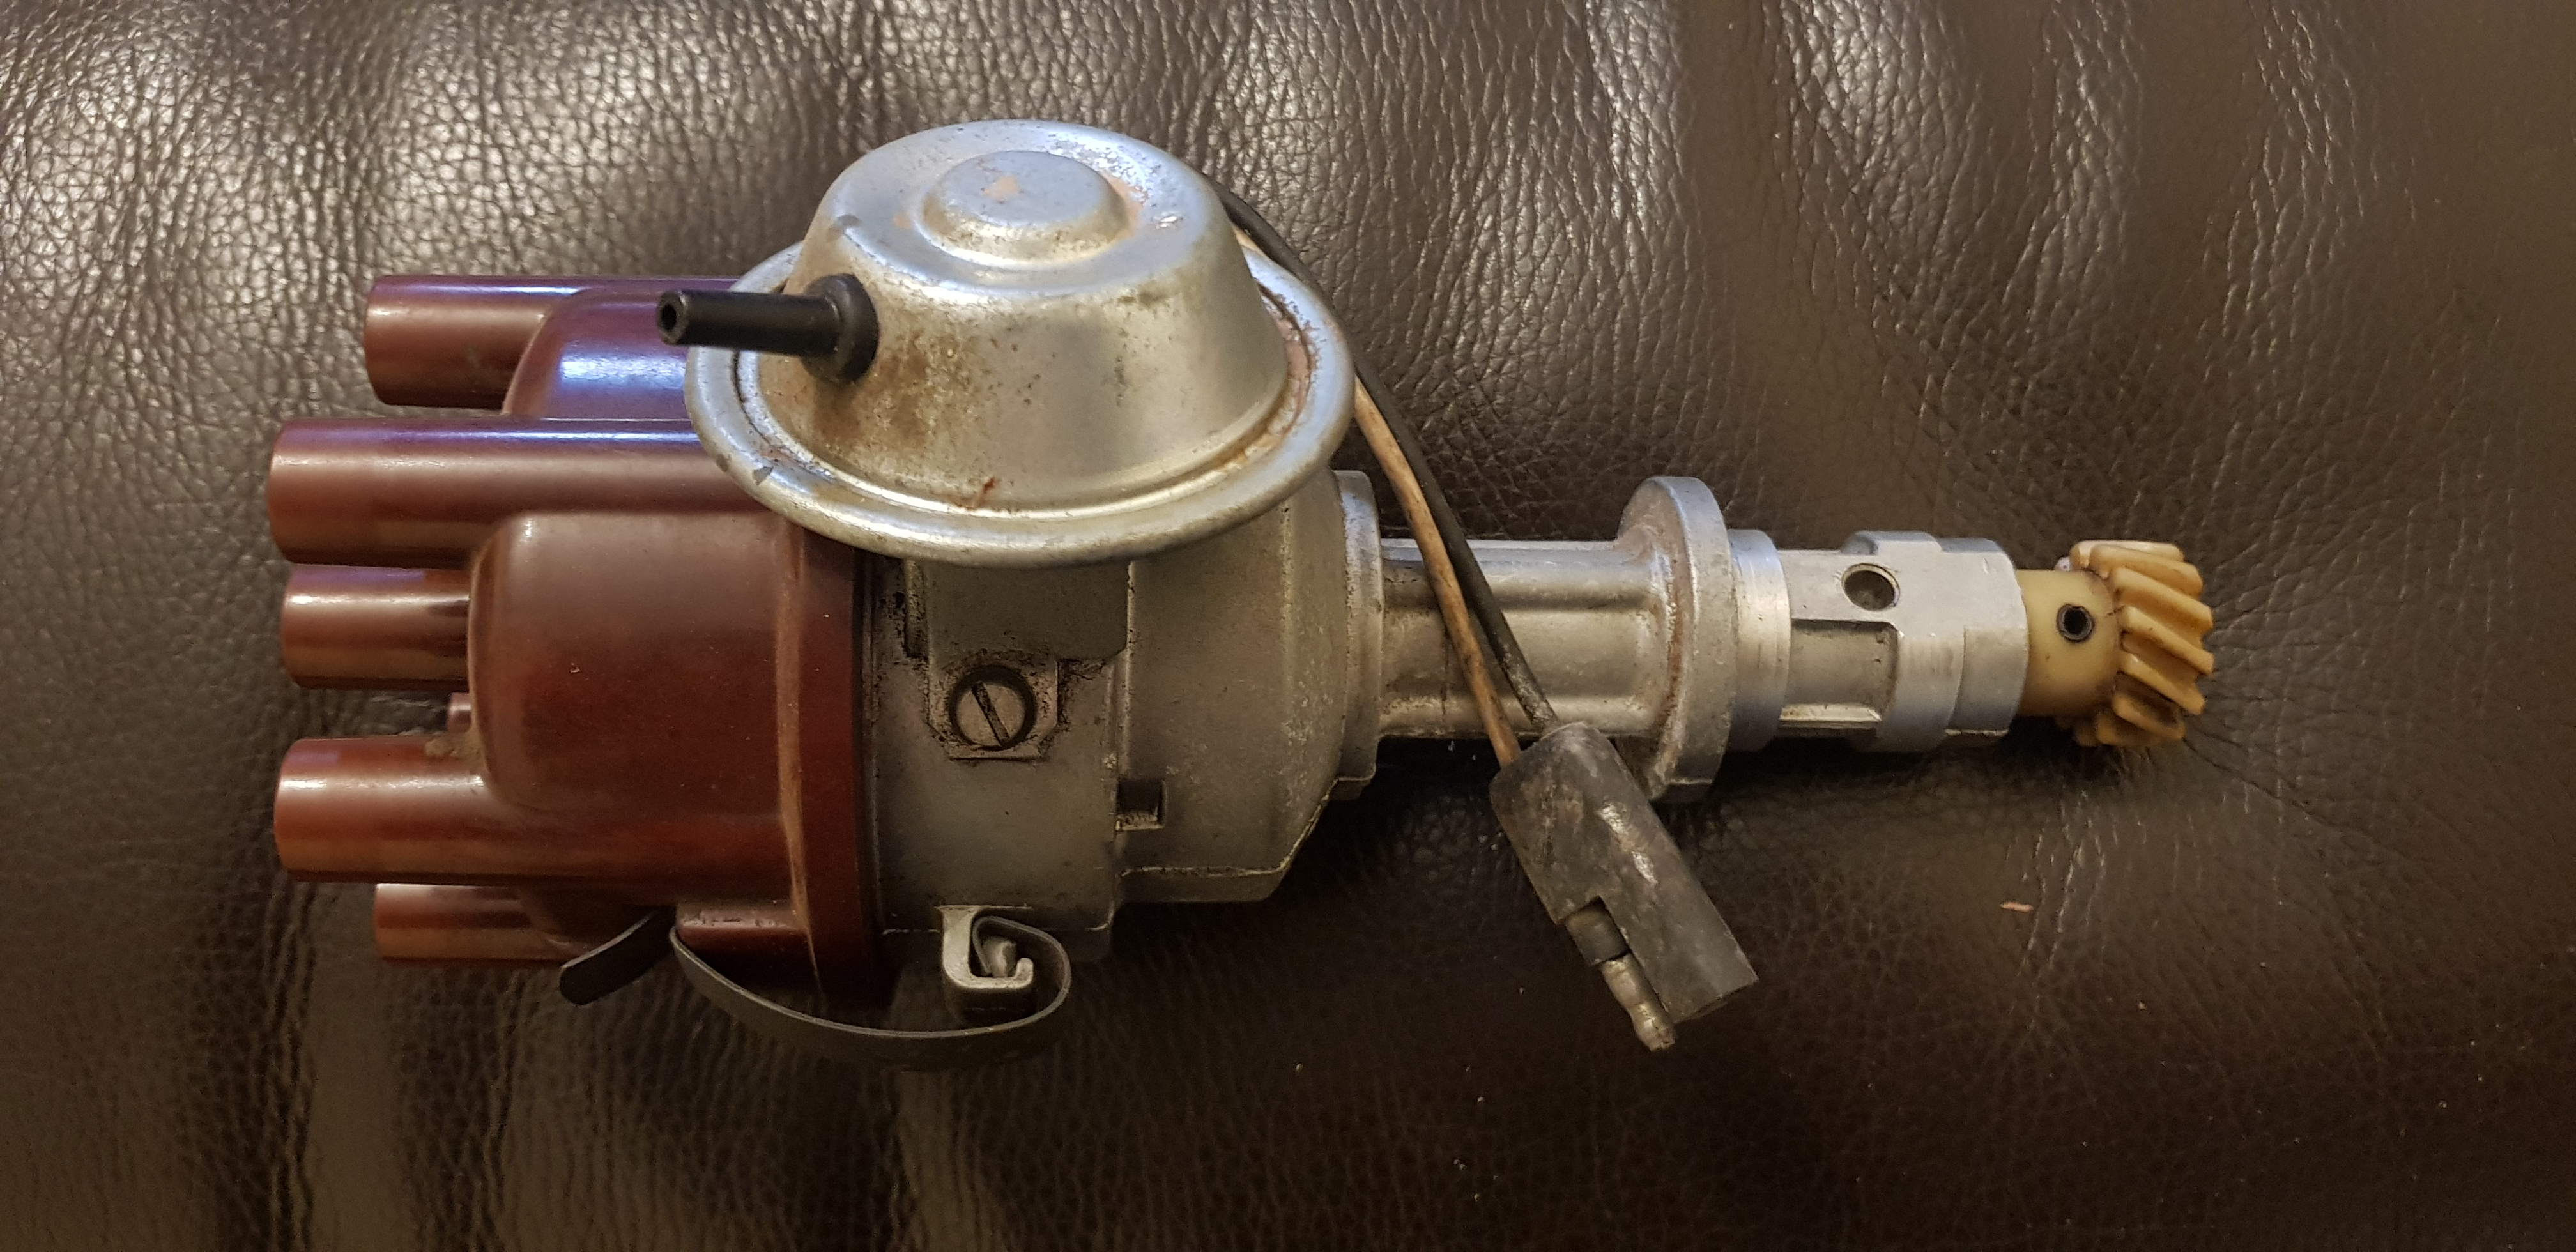 Hemi Electronic Distributor. Rebuilt in 1986, unused since